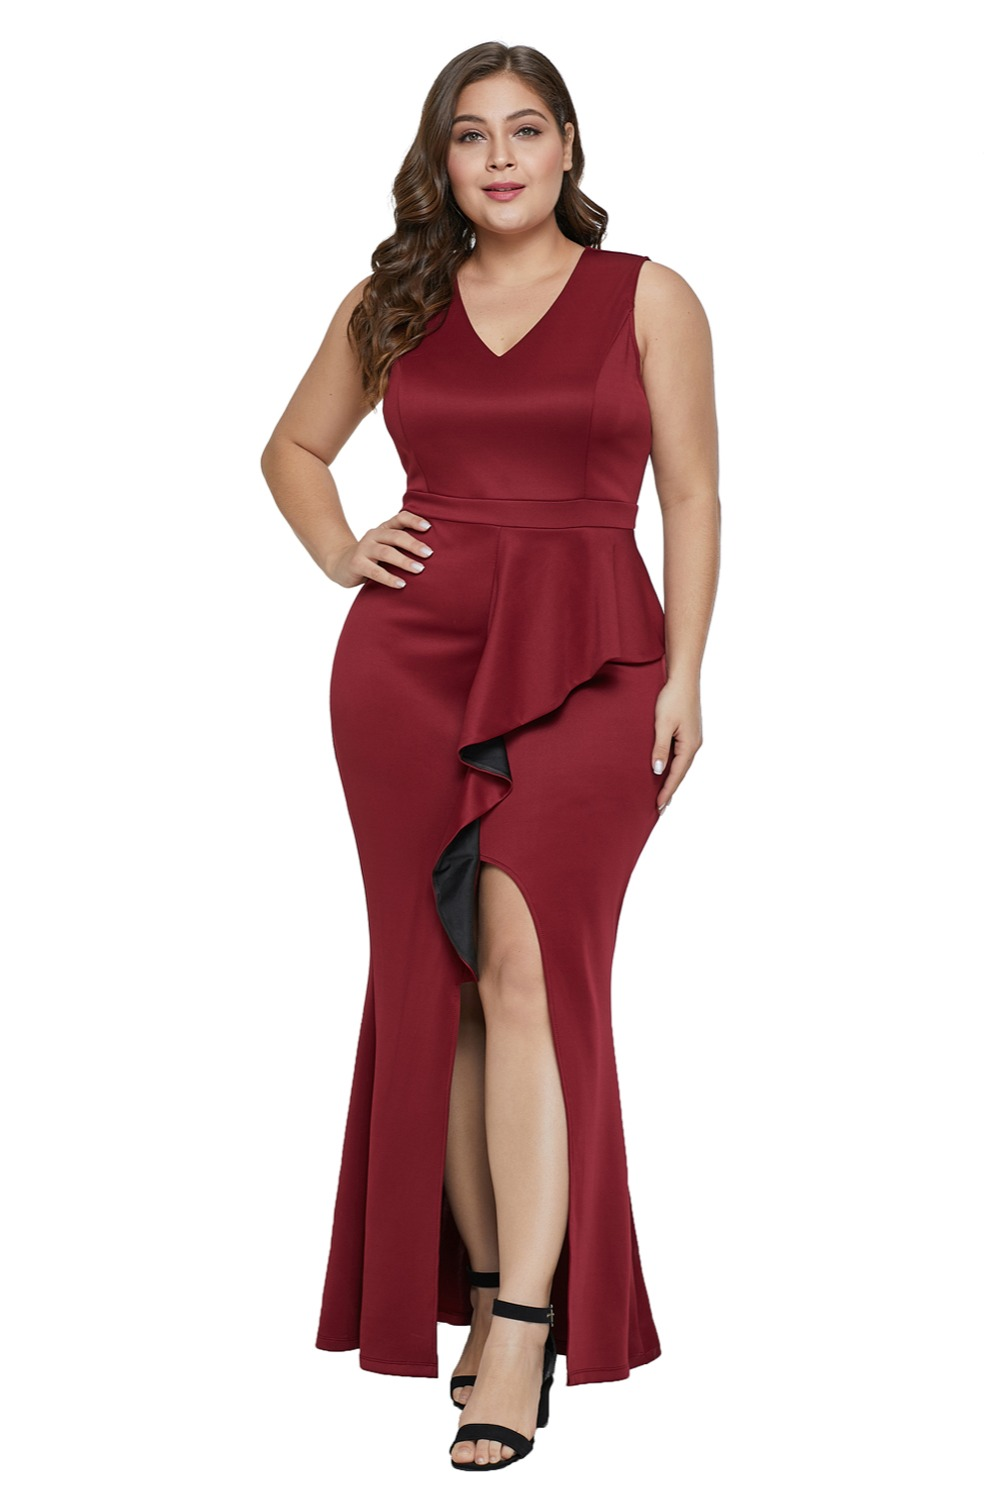 d2514fbc91dac BIG SALE] Gosopin V Neck Plus Size Sexy Slit Dress Women Summer ...